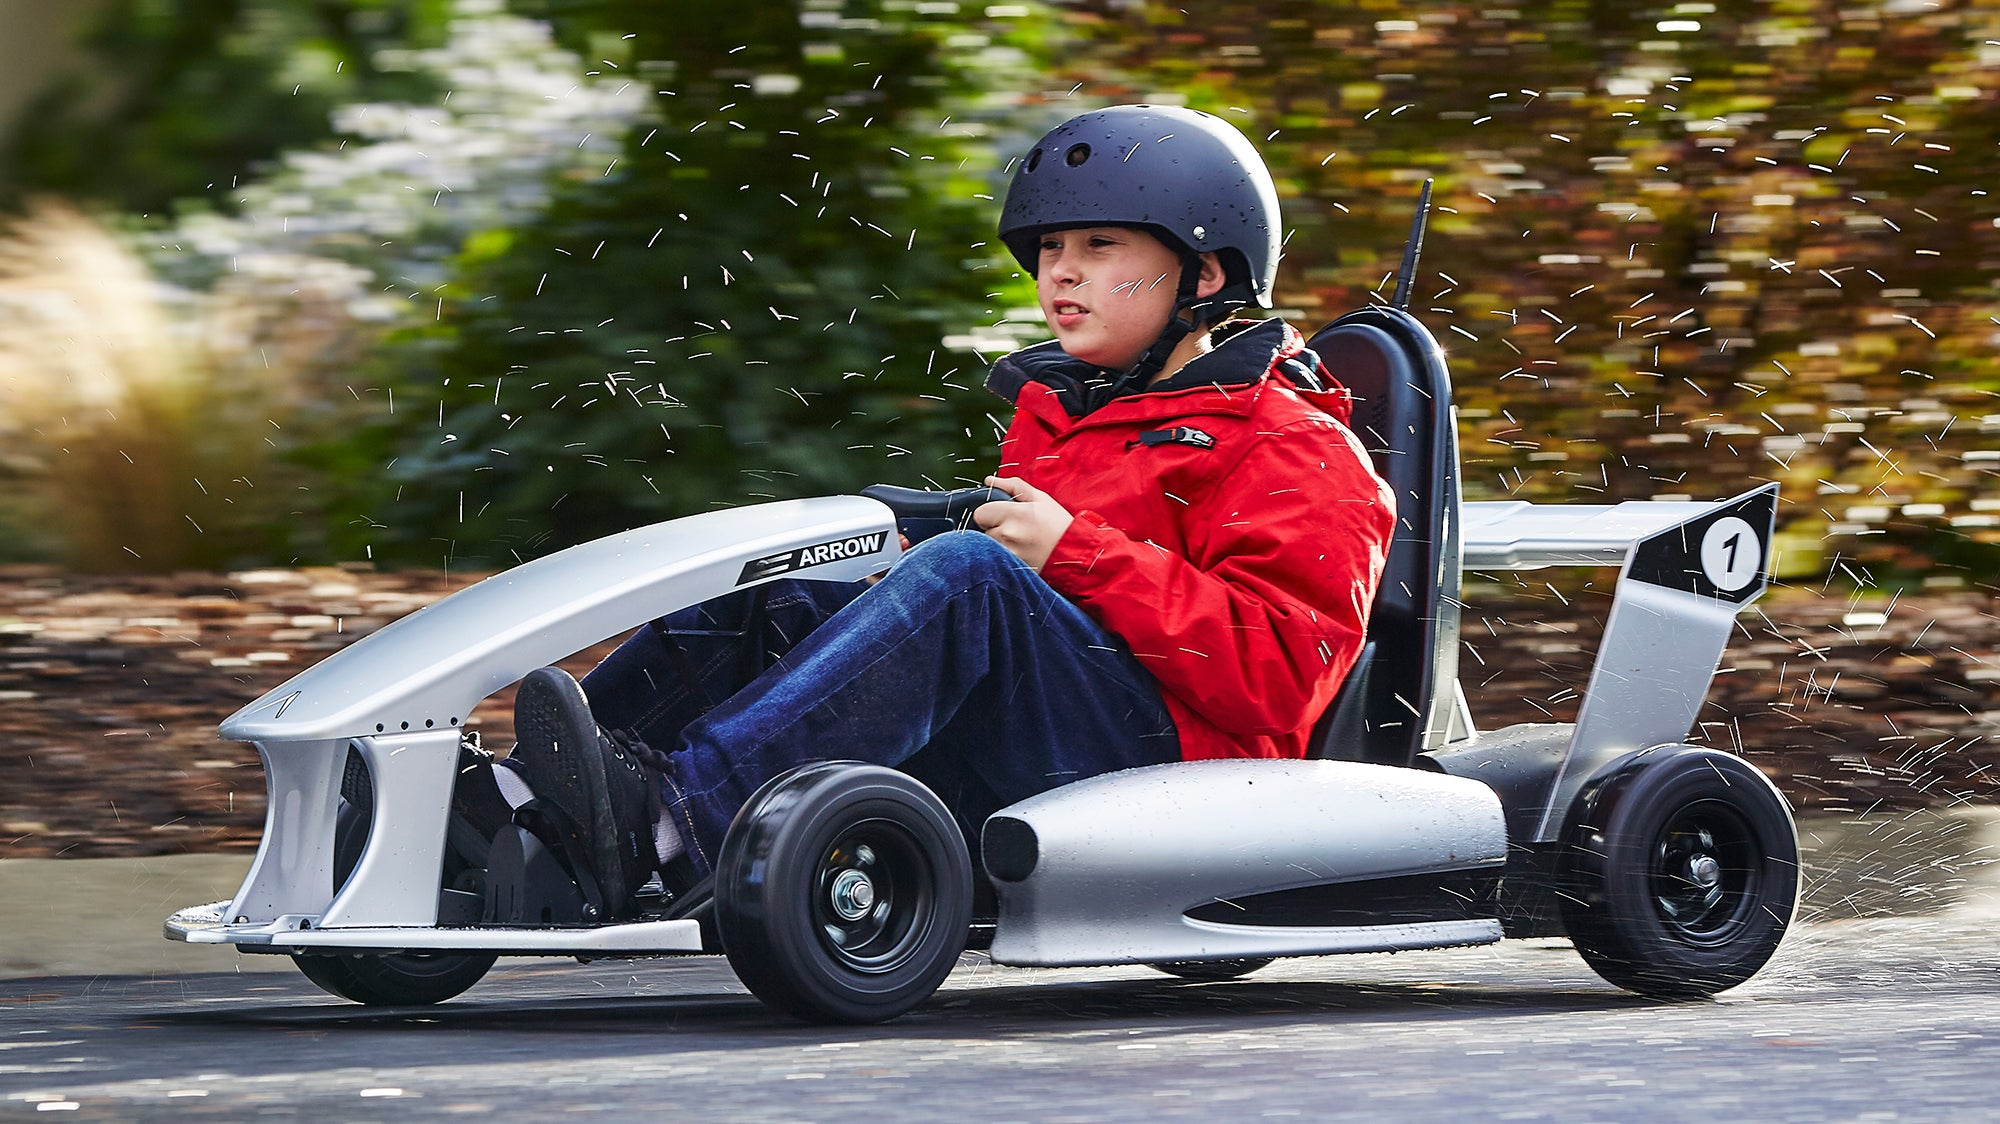 Toy 4 Wheelers For 8 Year Old Boys : The arrow smart electric go kart is a tesla for nine year